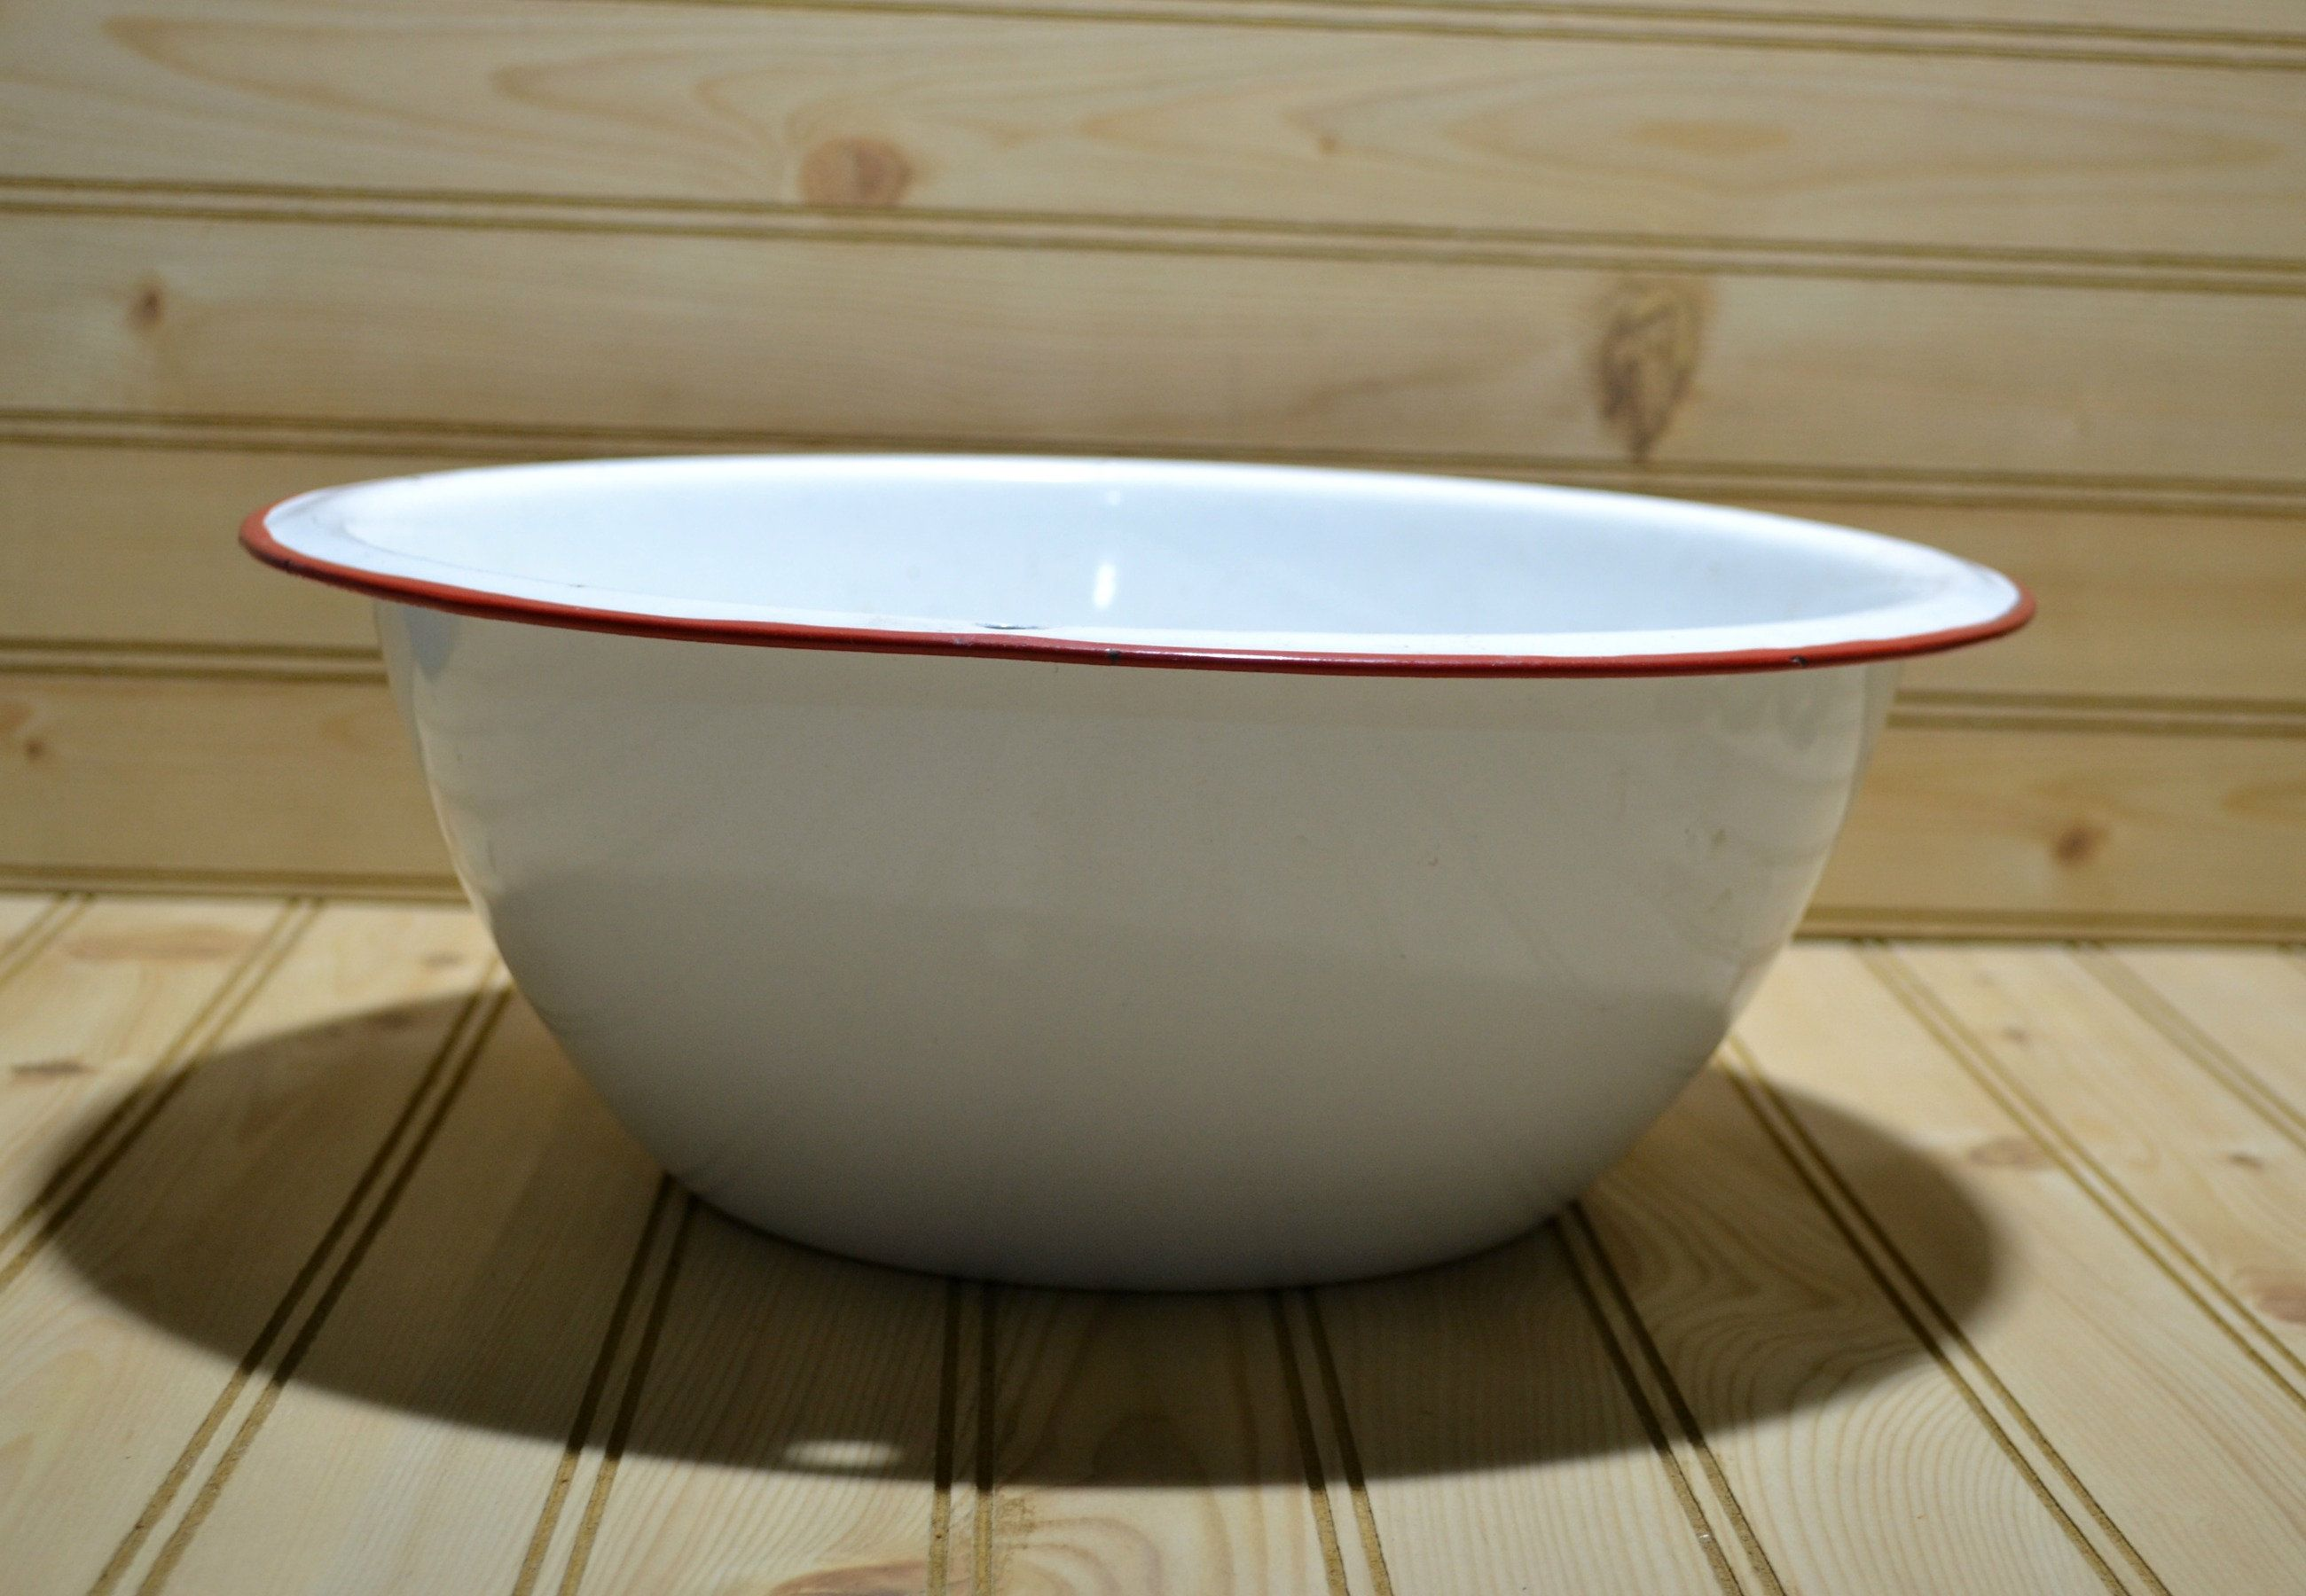 Vintage Enamelware Red White Bowl Basin Farmhouse Primitive Rustic Kitchen Country Collectible Tv Movie Prop By Grann White Bowls Vintage Enamelware Enamelware